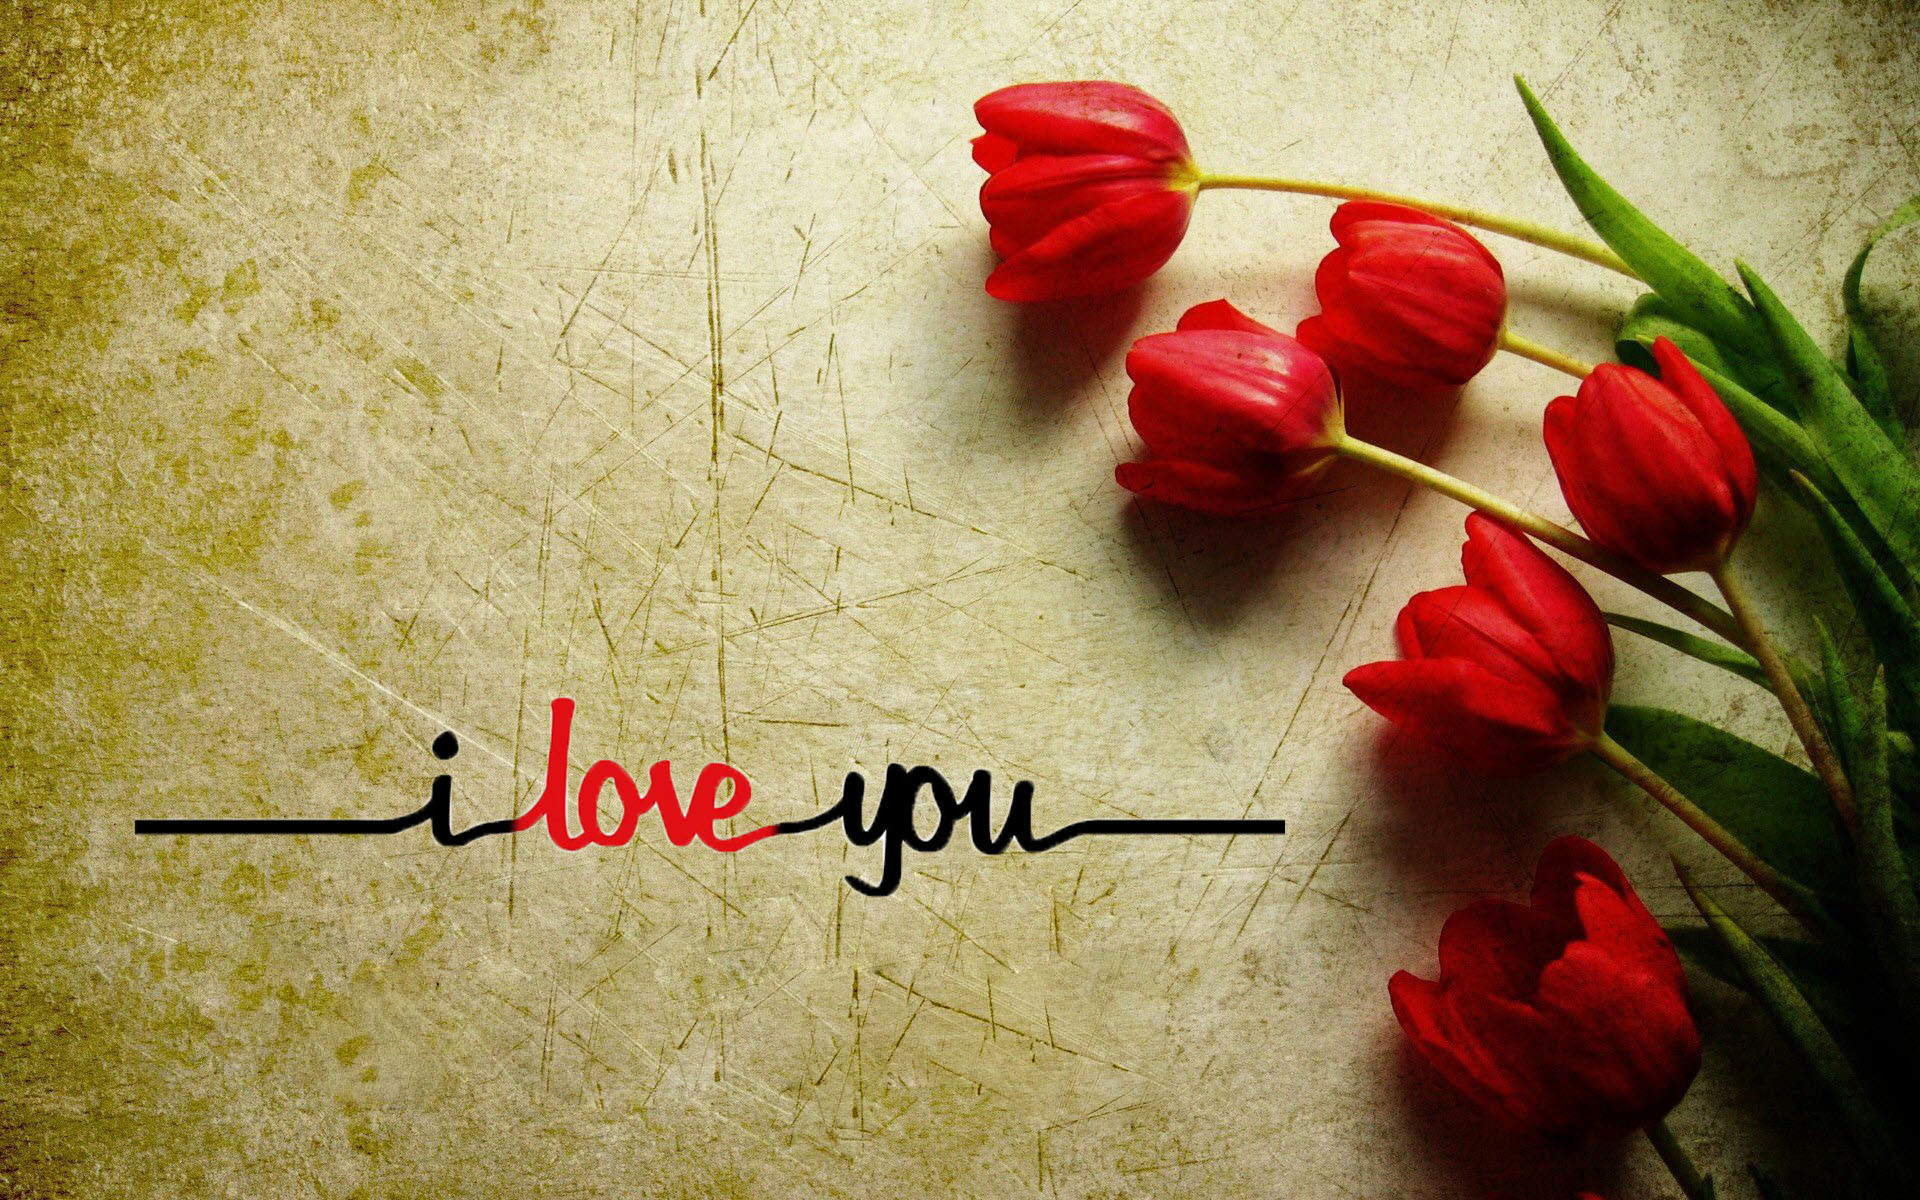 Love u wallpaper wallpapertag - I love you 4k ...